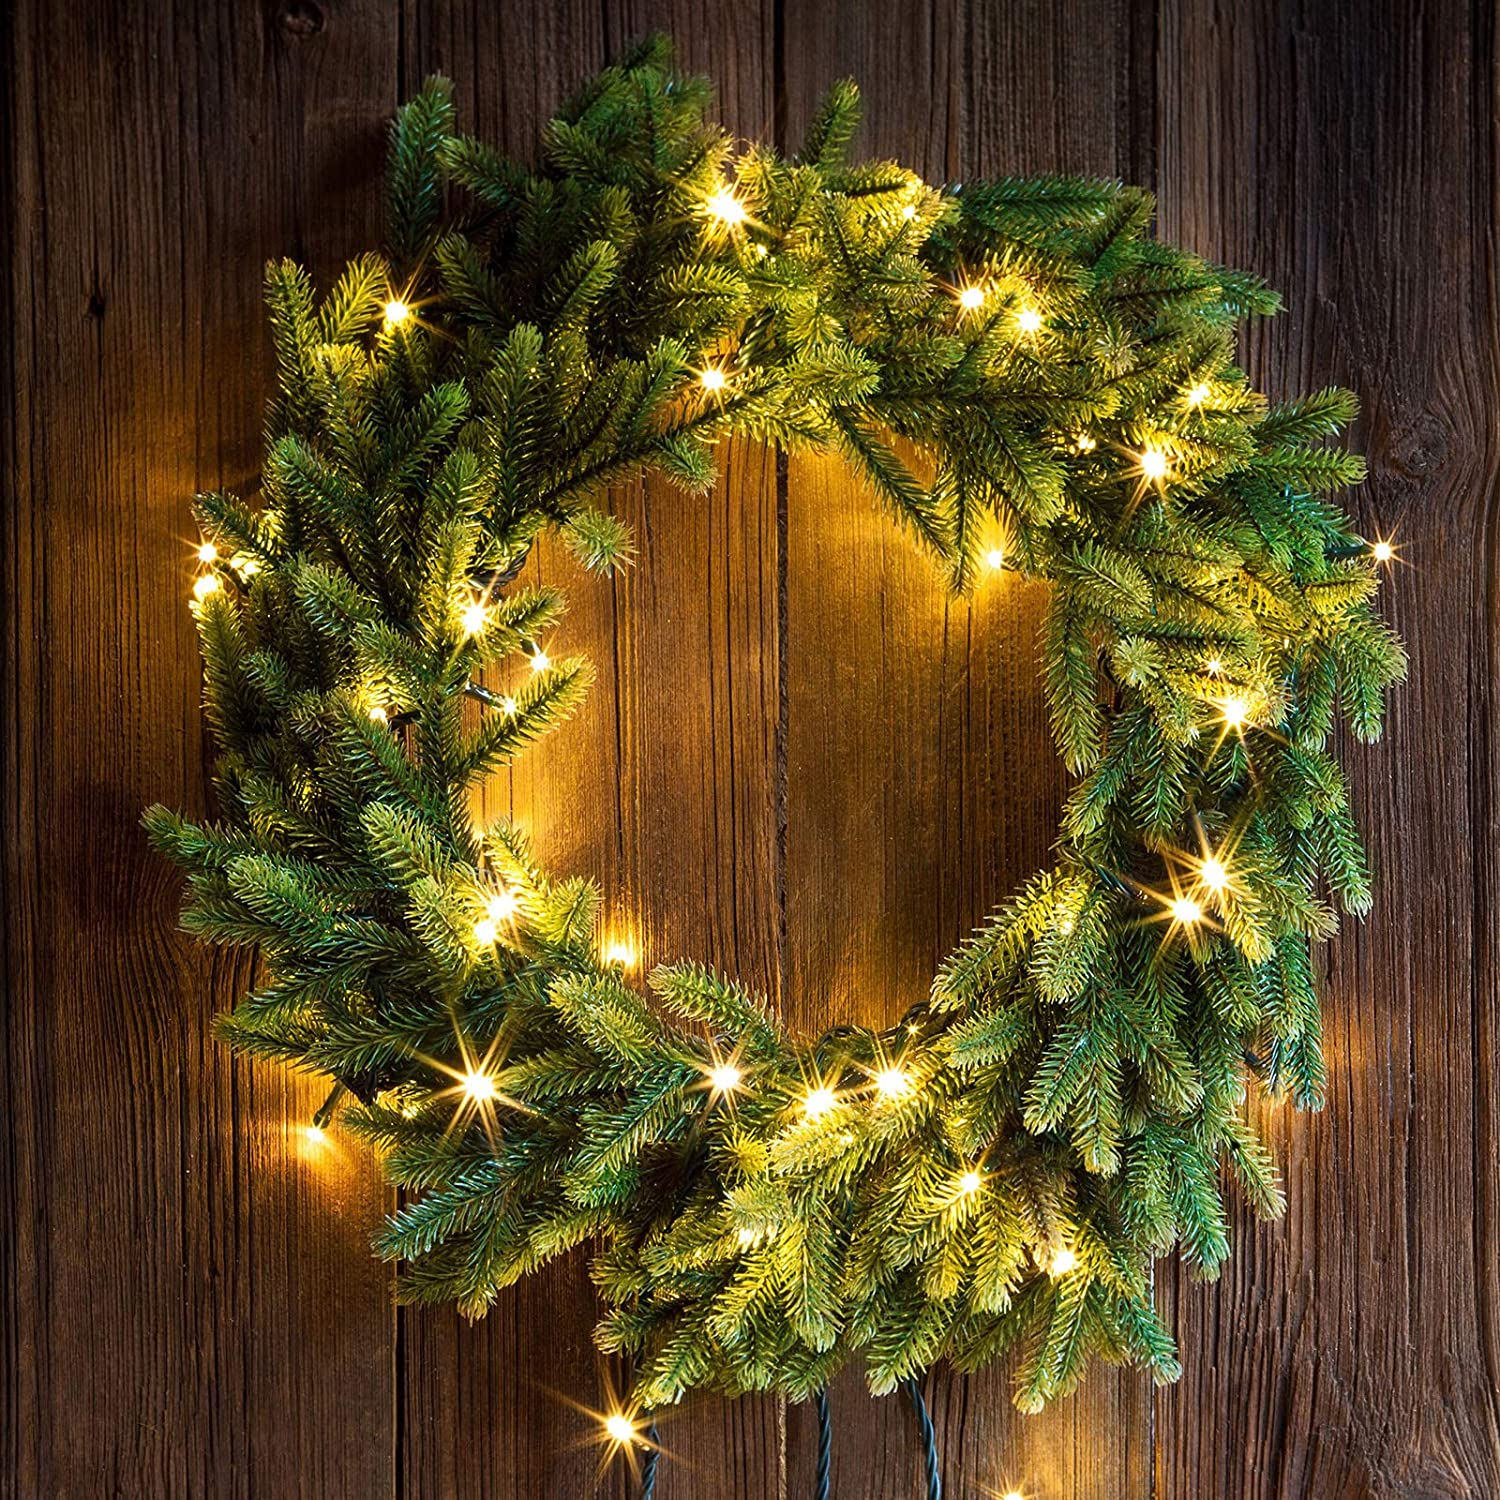 Elcoho 4 Pack Wire Wreath Frame 8 Inch 12 Inch 14 Inch 16 Inch Christmas Metal Wreath Frames with Green Florists Wire